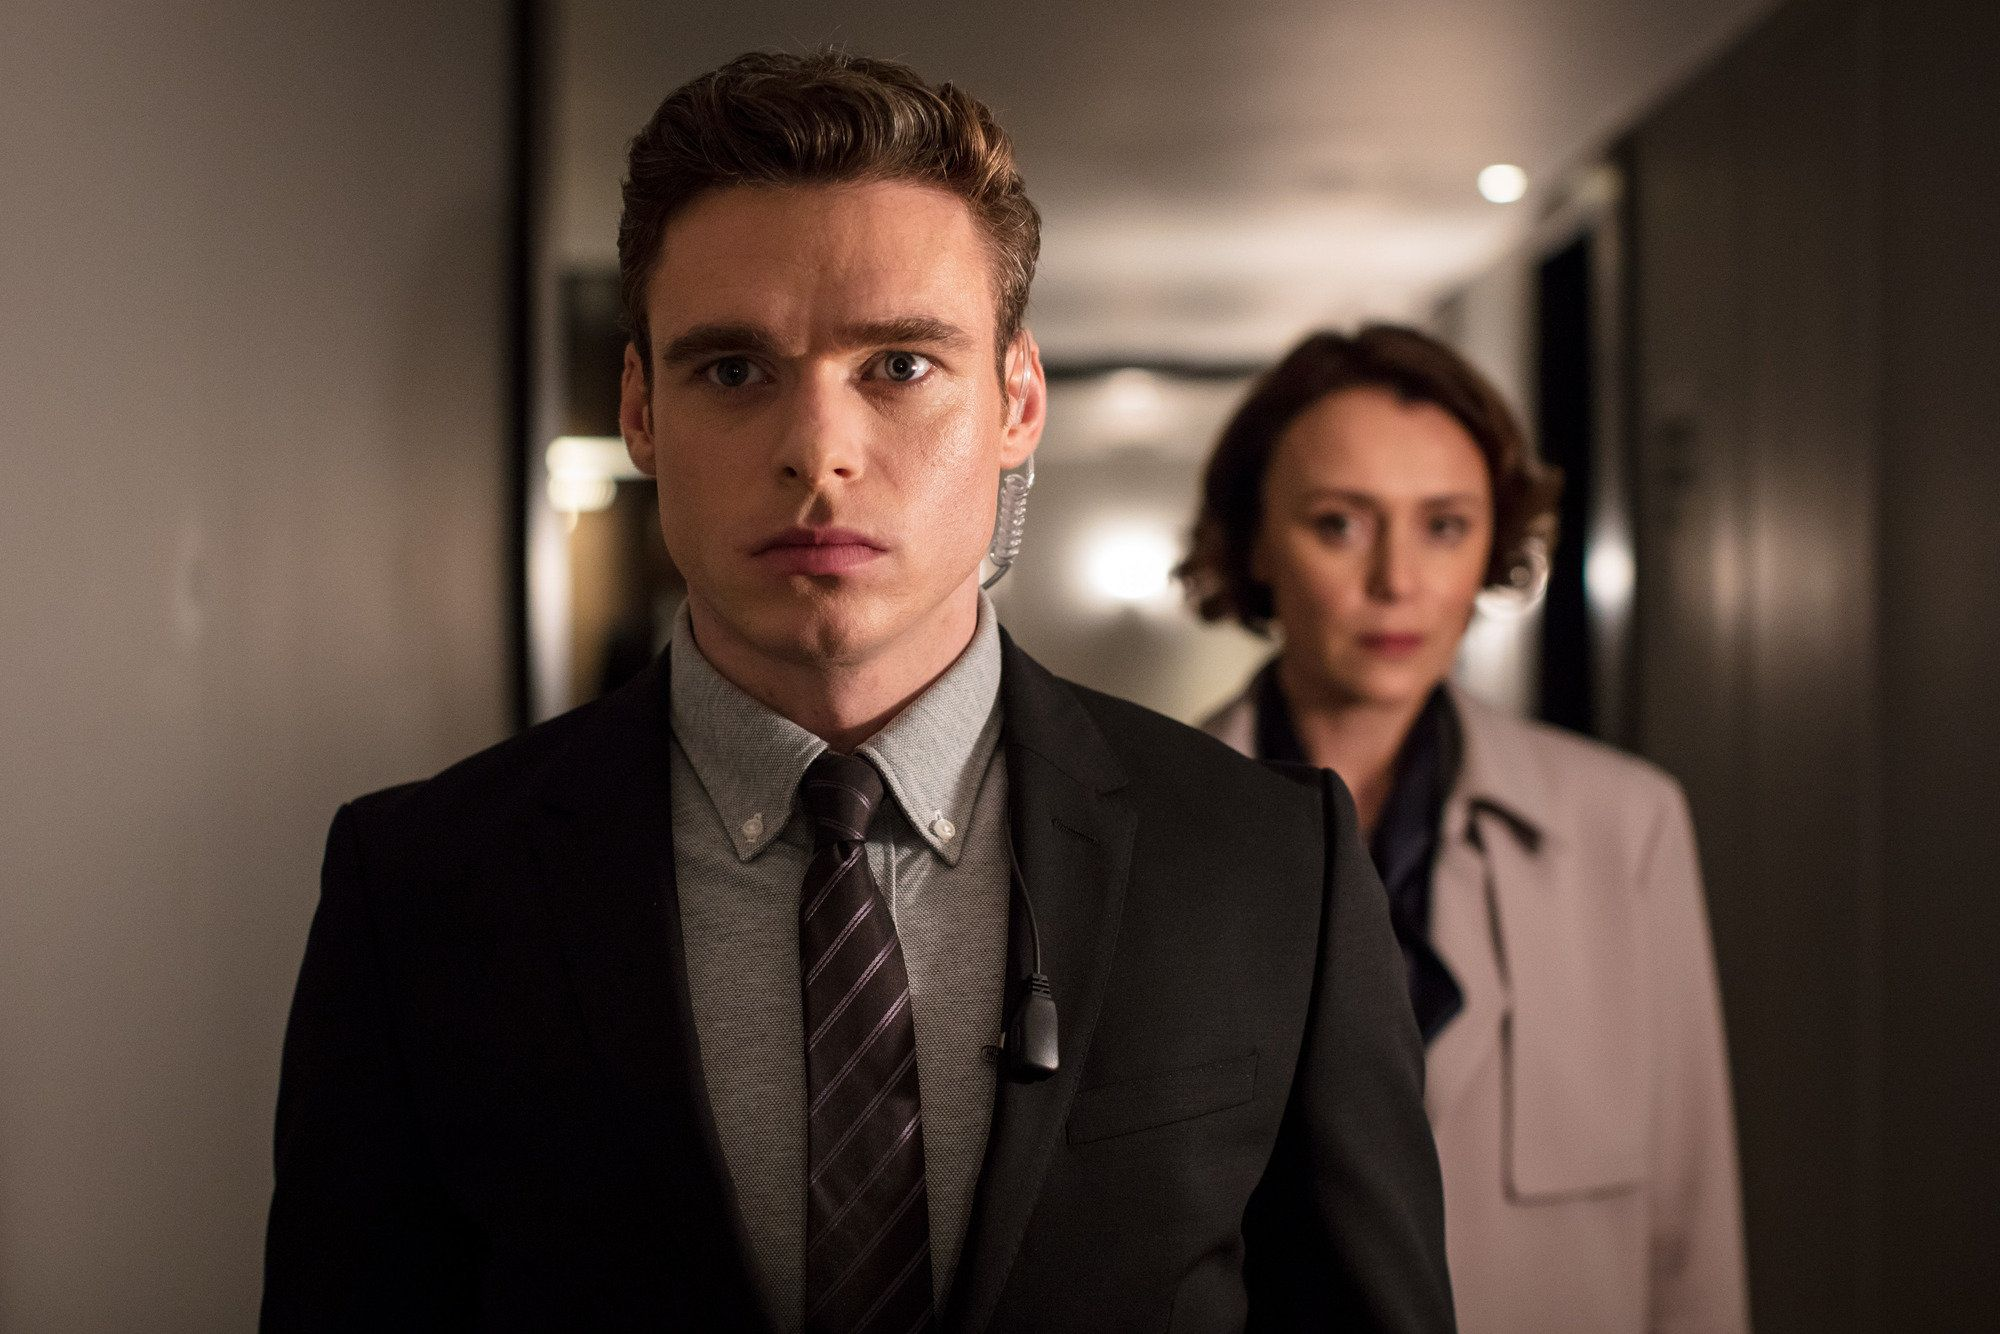 'Bodyguard' Creator Explains Why He Killed Off Main Character In Unexpected Plot Twist